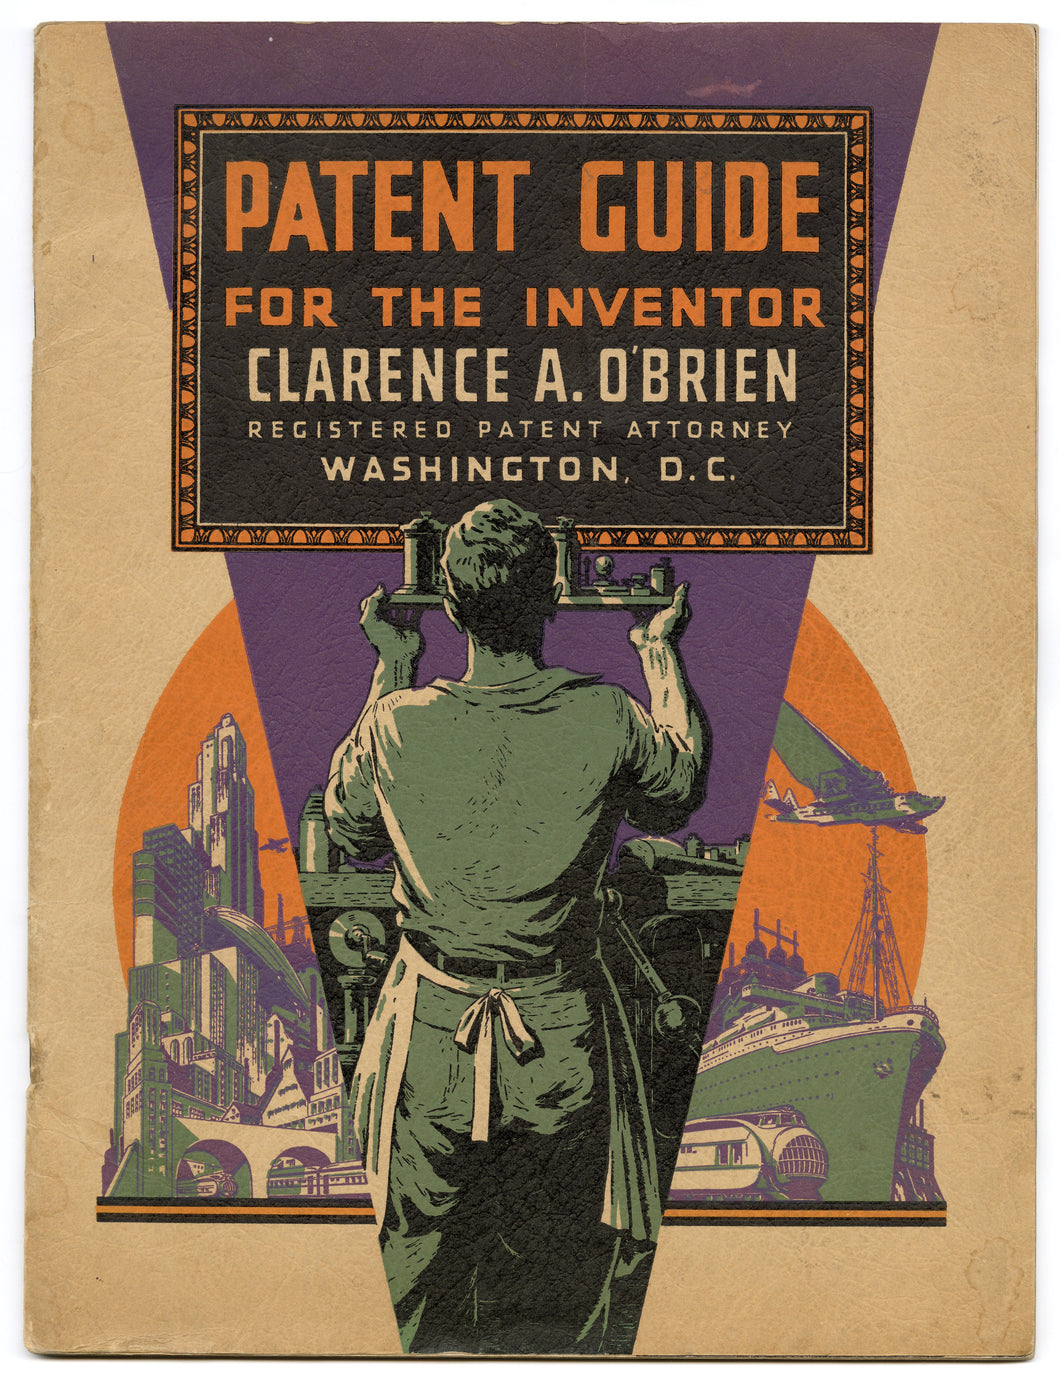 1930's Patent Guide for the Inventor Catalog, Magazine, Book, Art Deco\